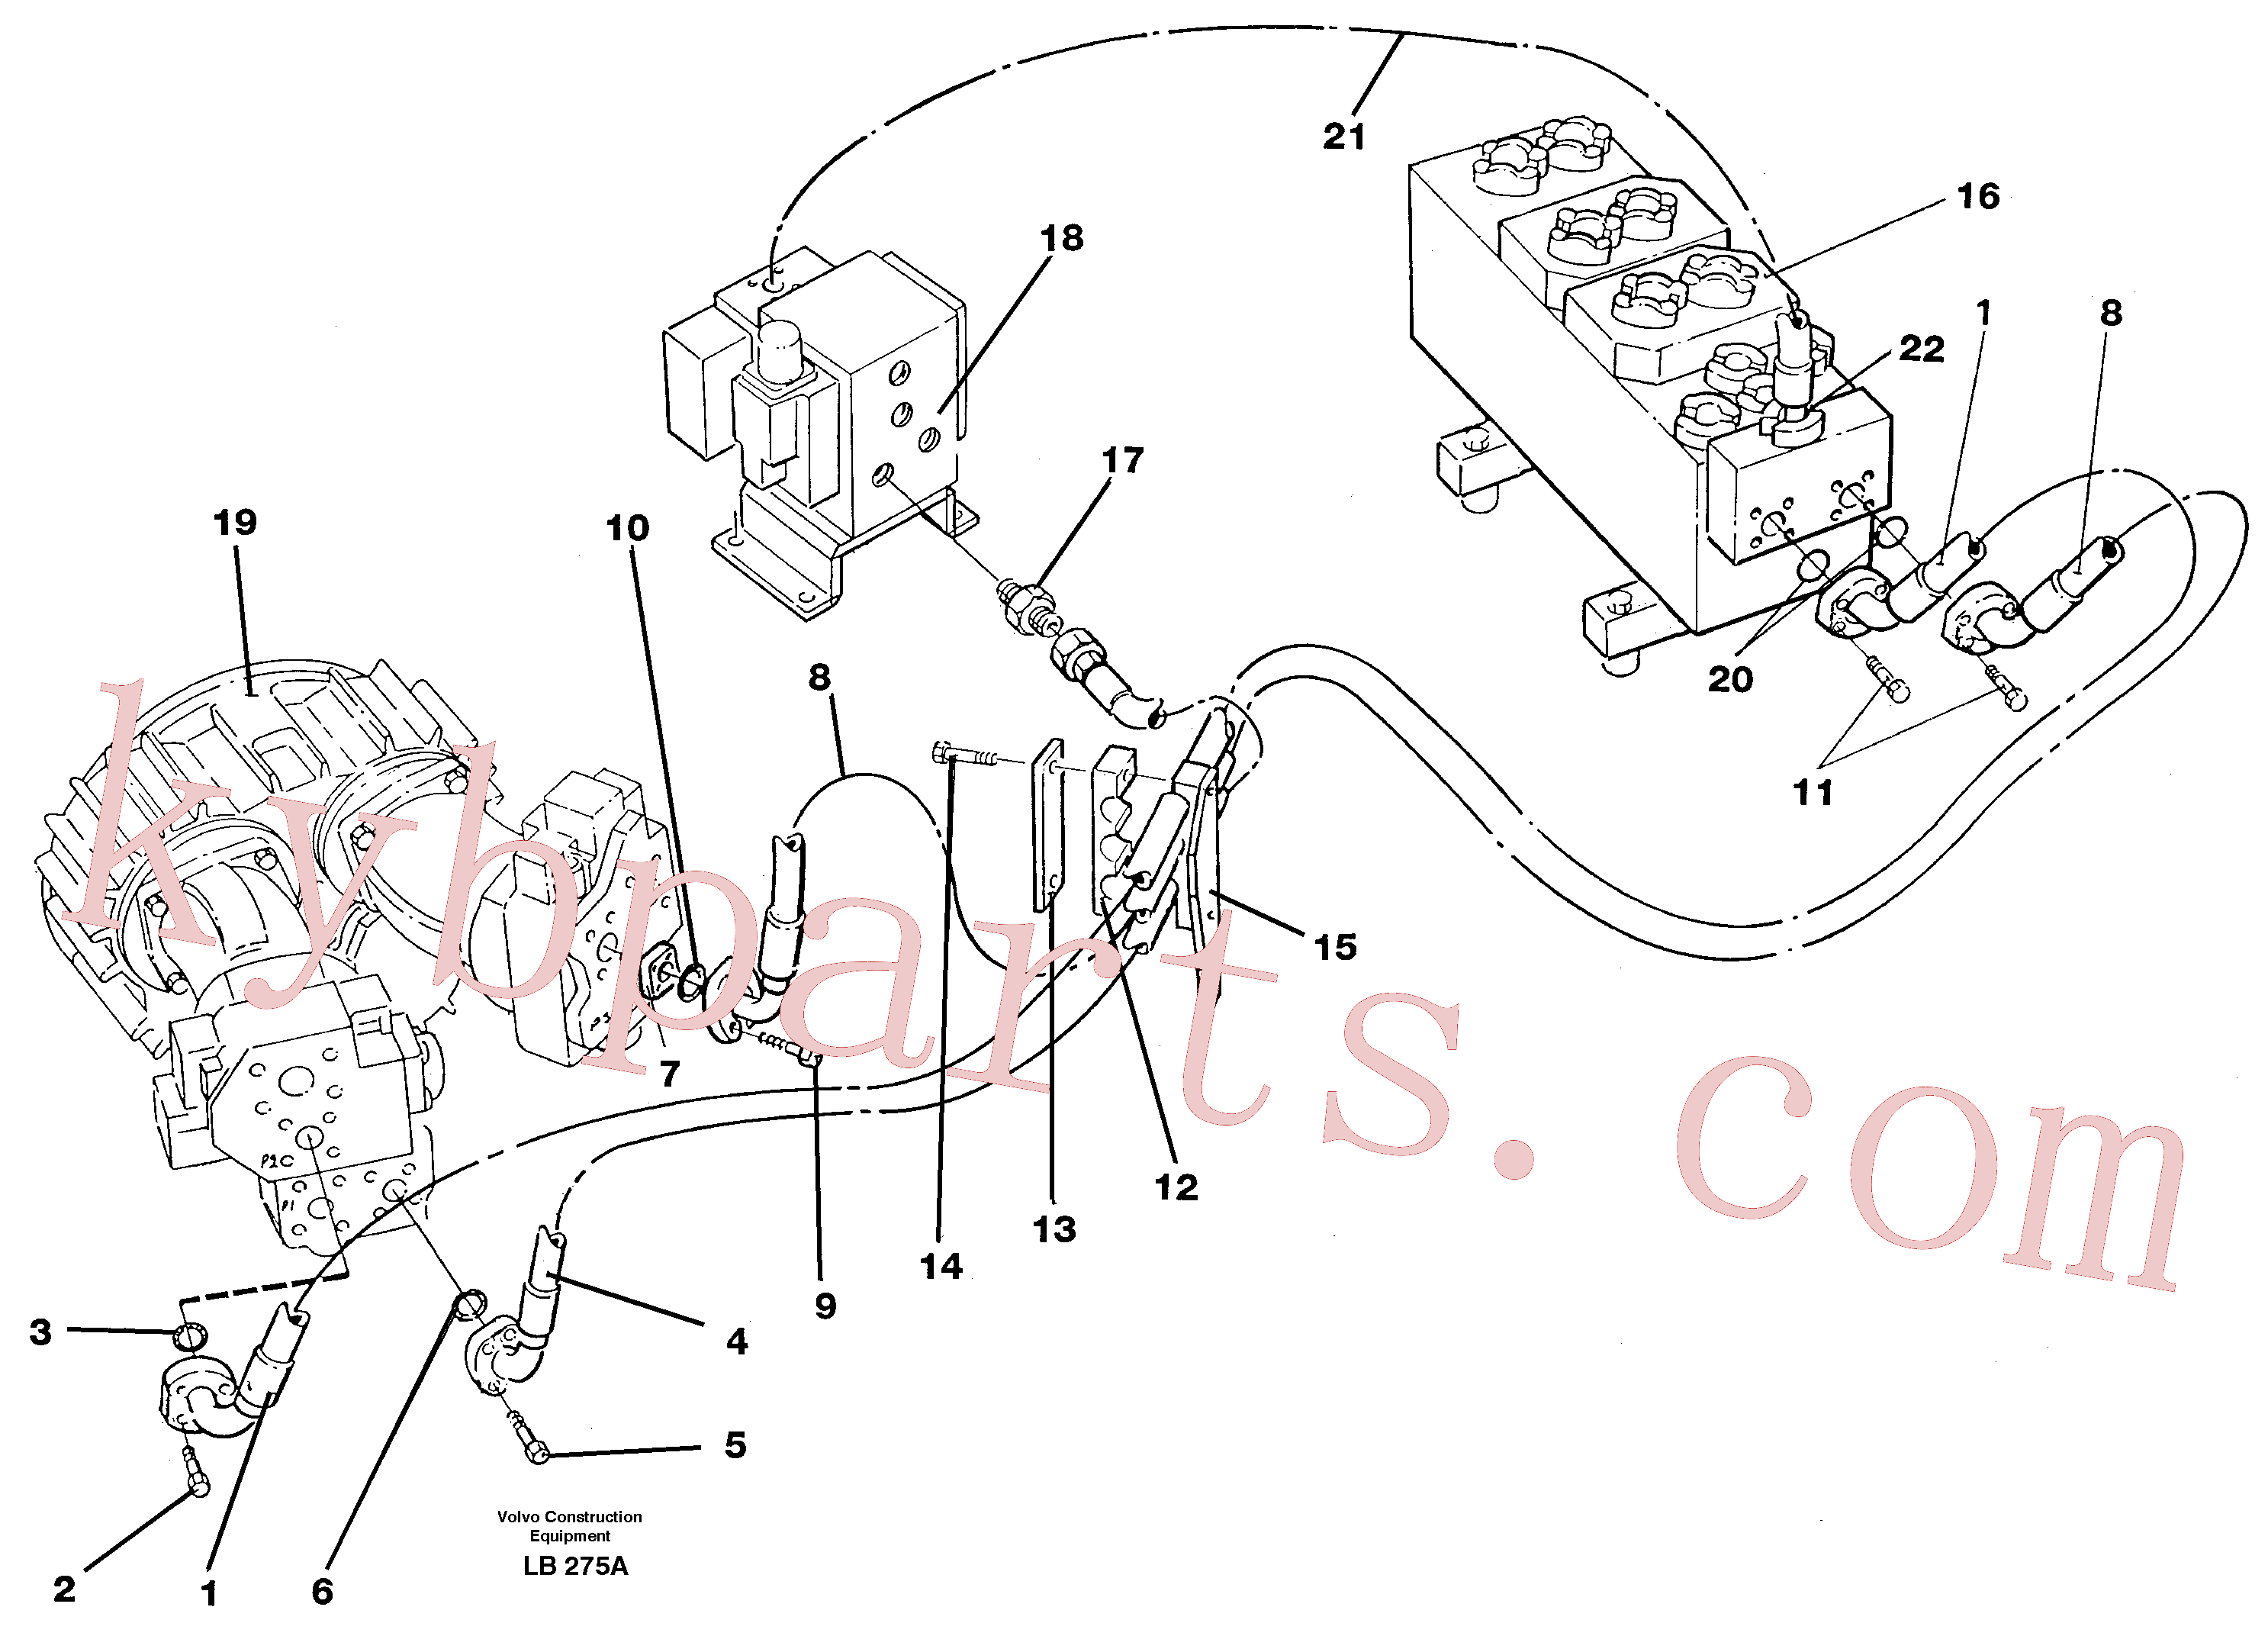 VOE14263450 for Volvo Hydraulic system, feed line(LB275A assembly)